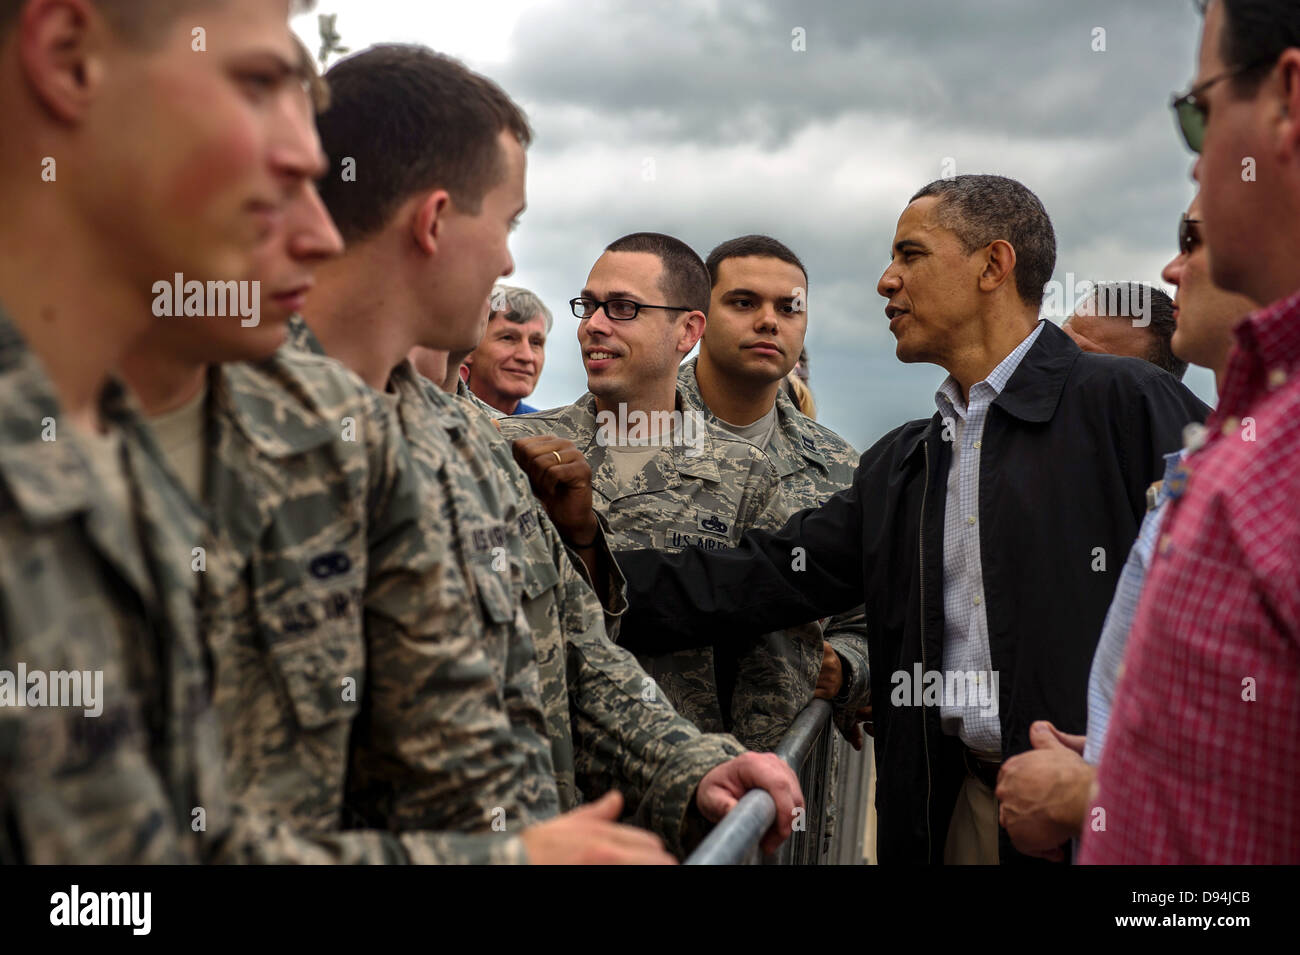 US President Barack Obama greets airmen and family members May 26, 2013 at Tinker Air Force Base, OK. The President - Stock Image